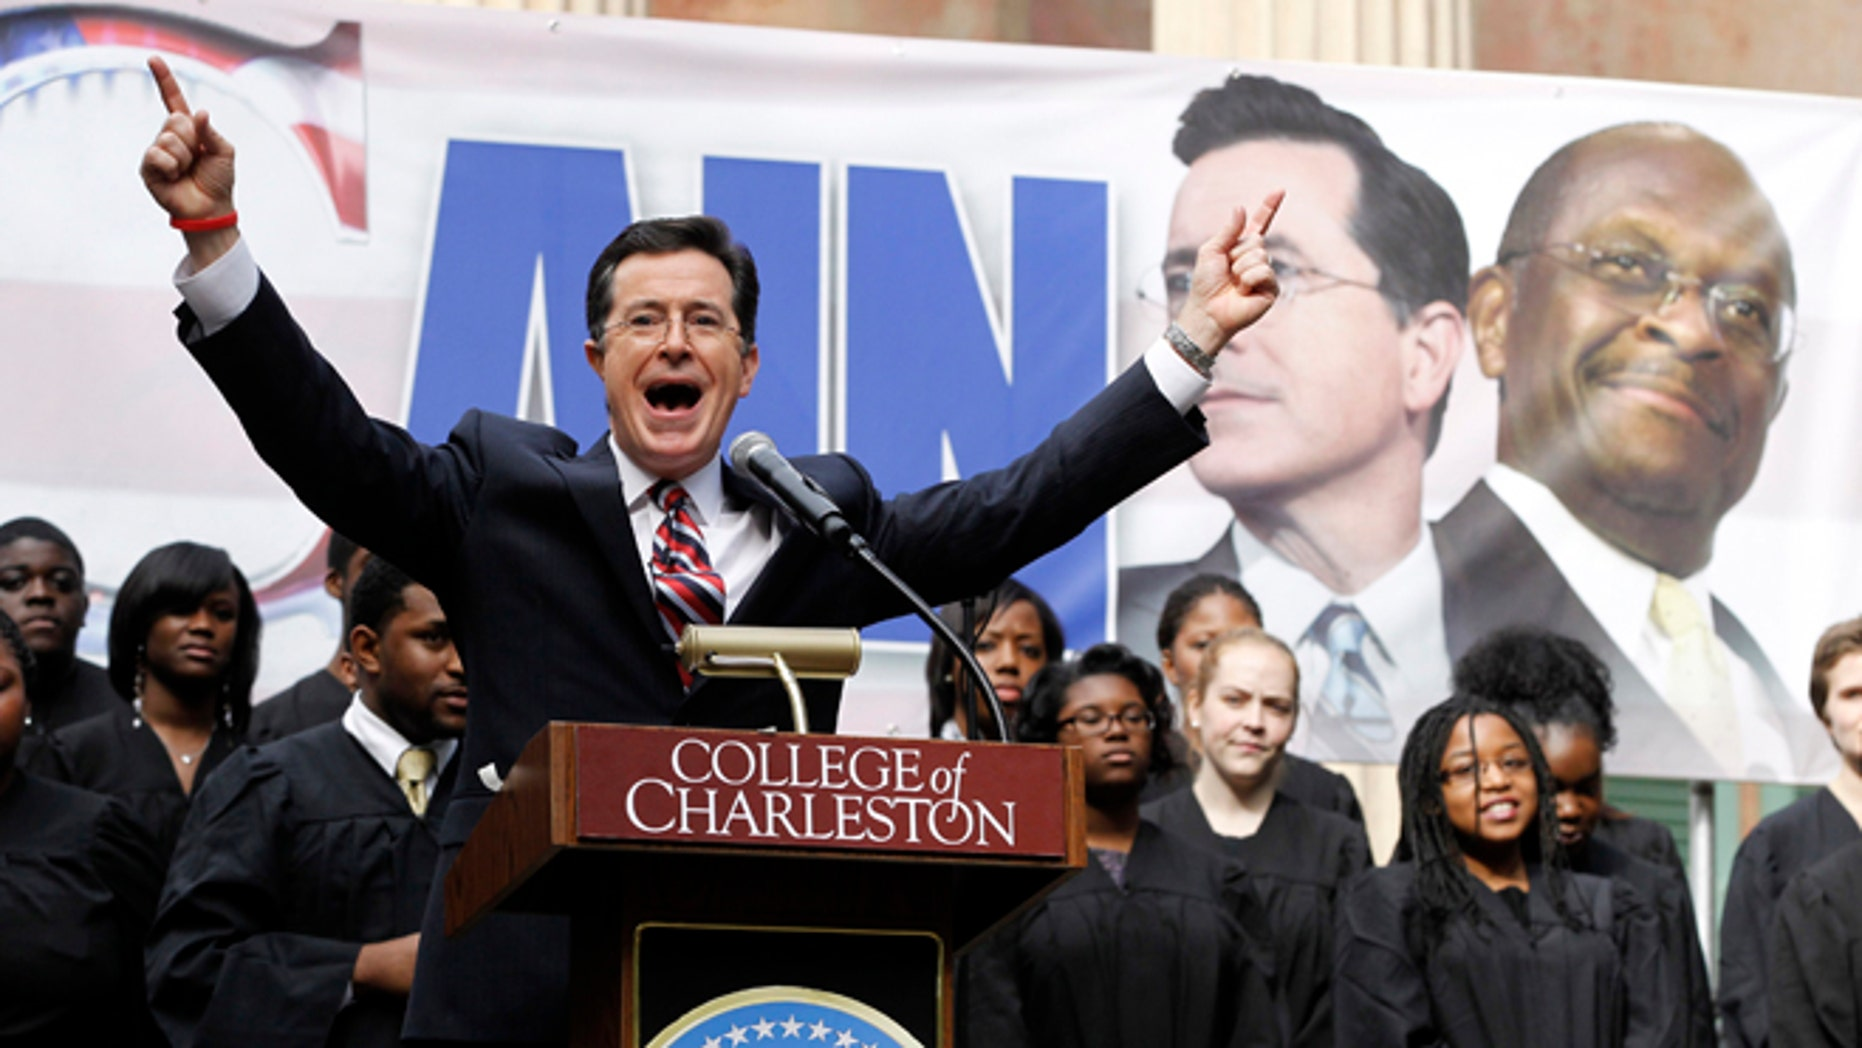 FILE:  January 20, 2012: Stephen Colbert hosts a rally with then-GOP presidential candidate Herman Cain, at the College of Charleston, in South Carolina.